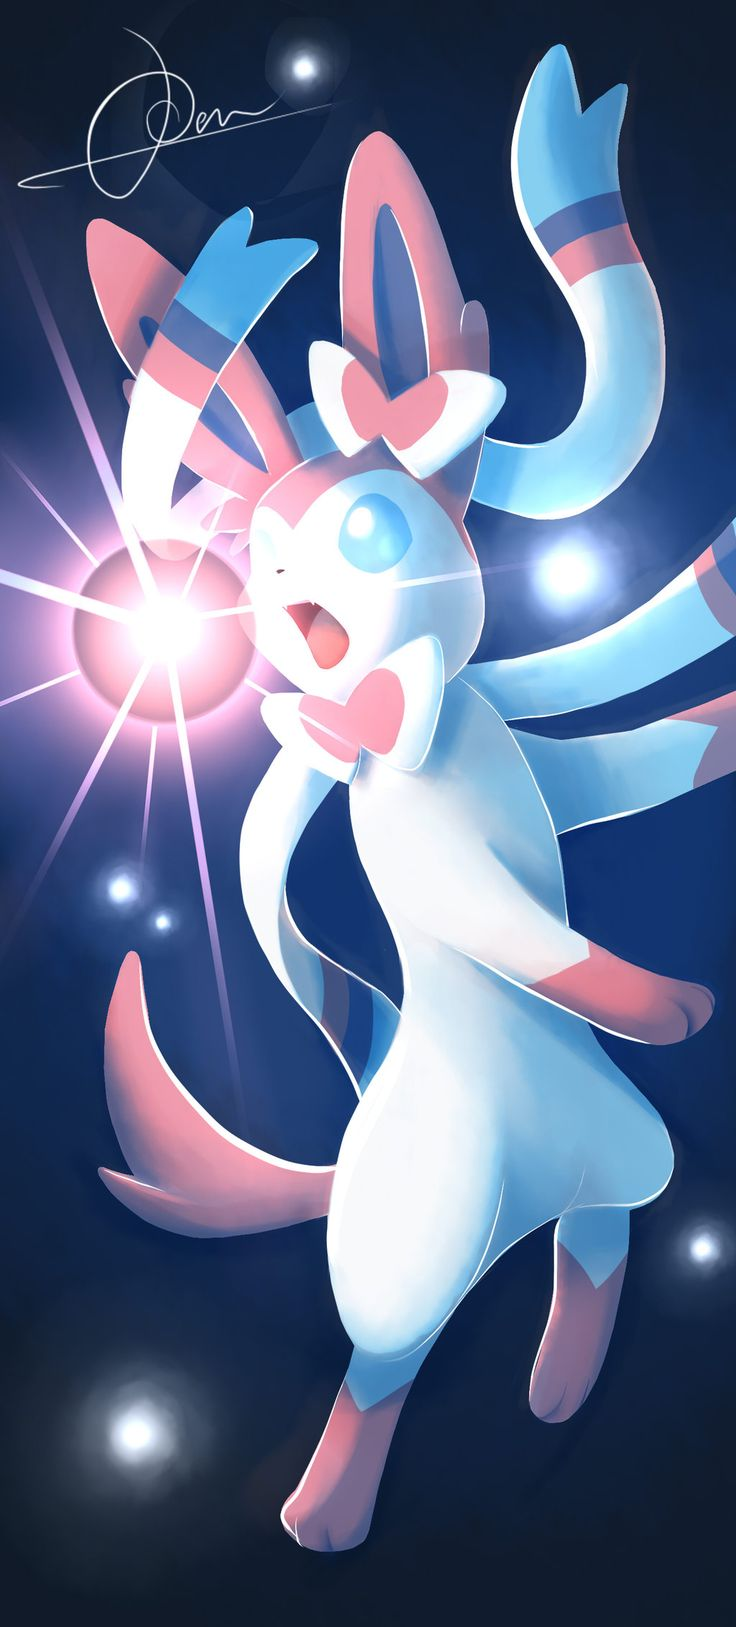 Enchant them all! The intertwining has arrived! by VulcanusKnight.deviantart.com on @deviantART (Sylveon)